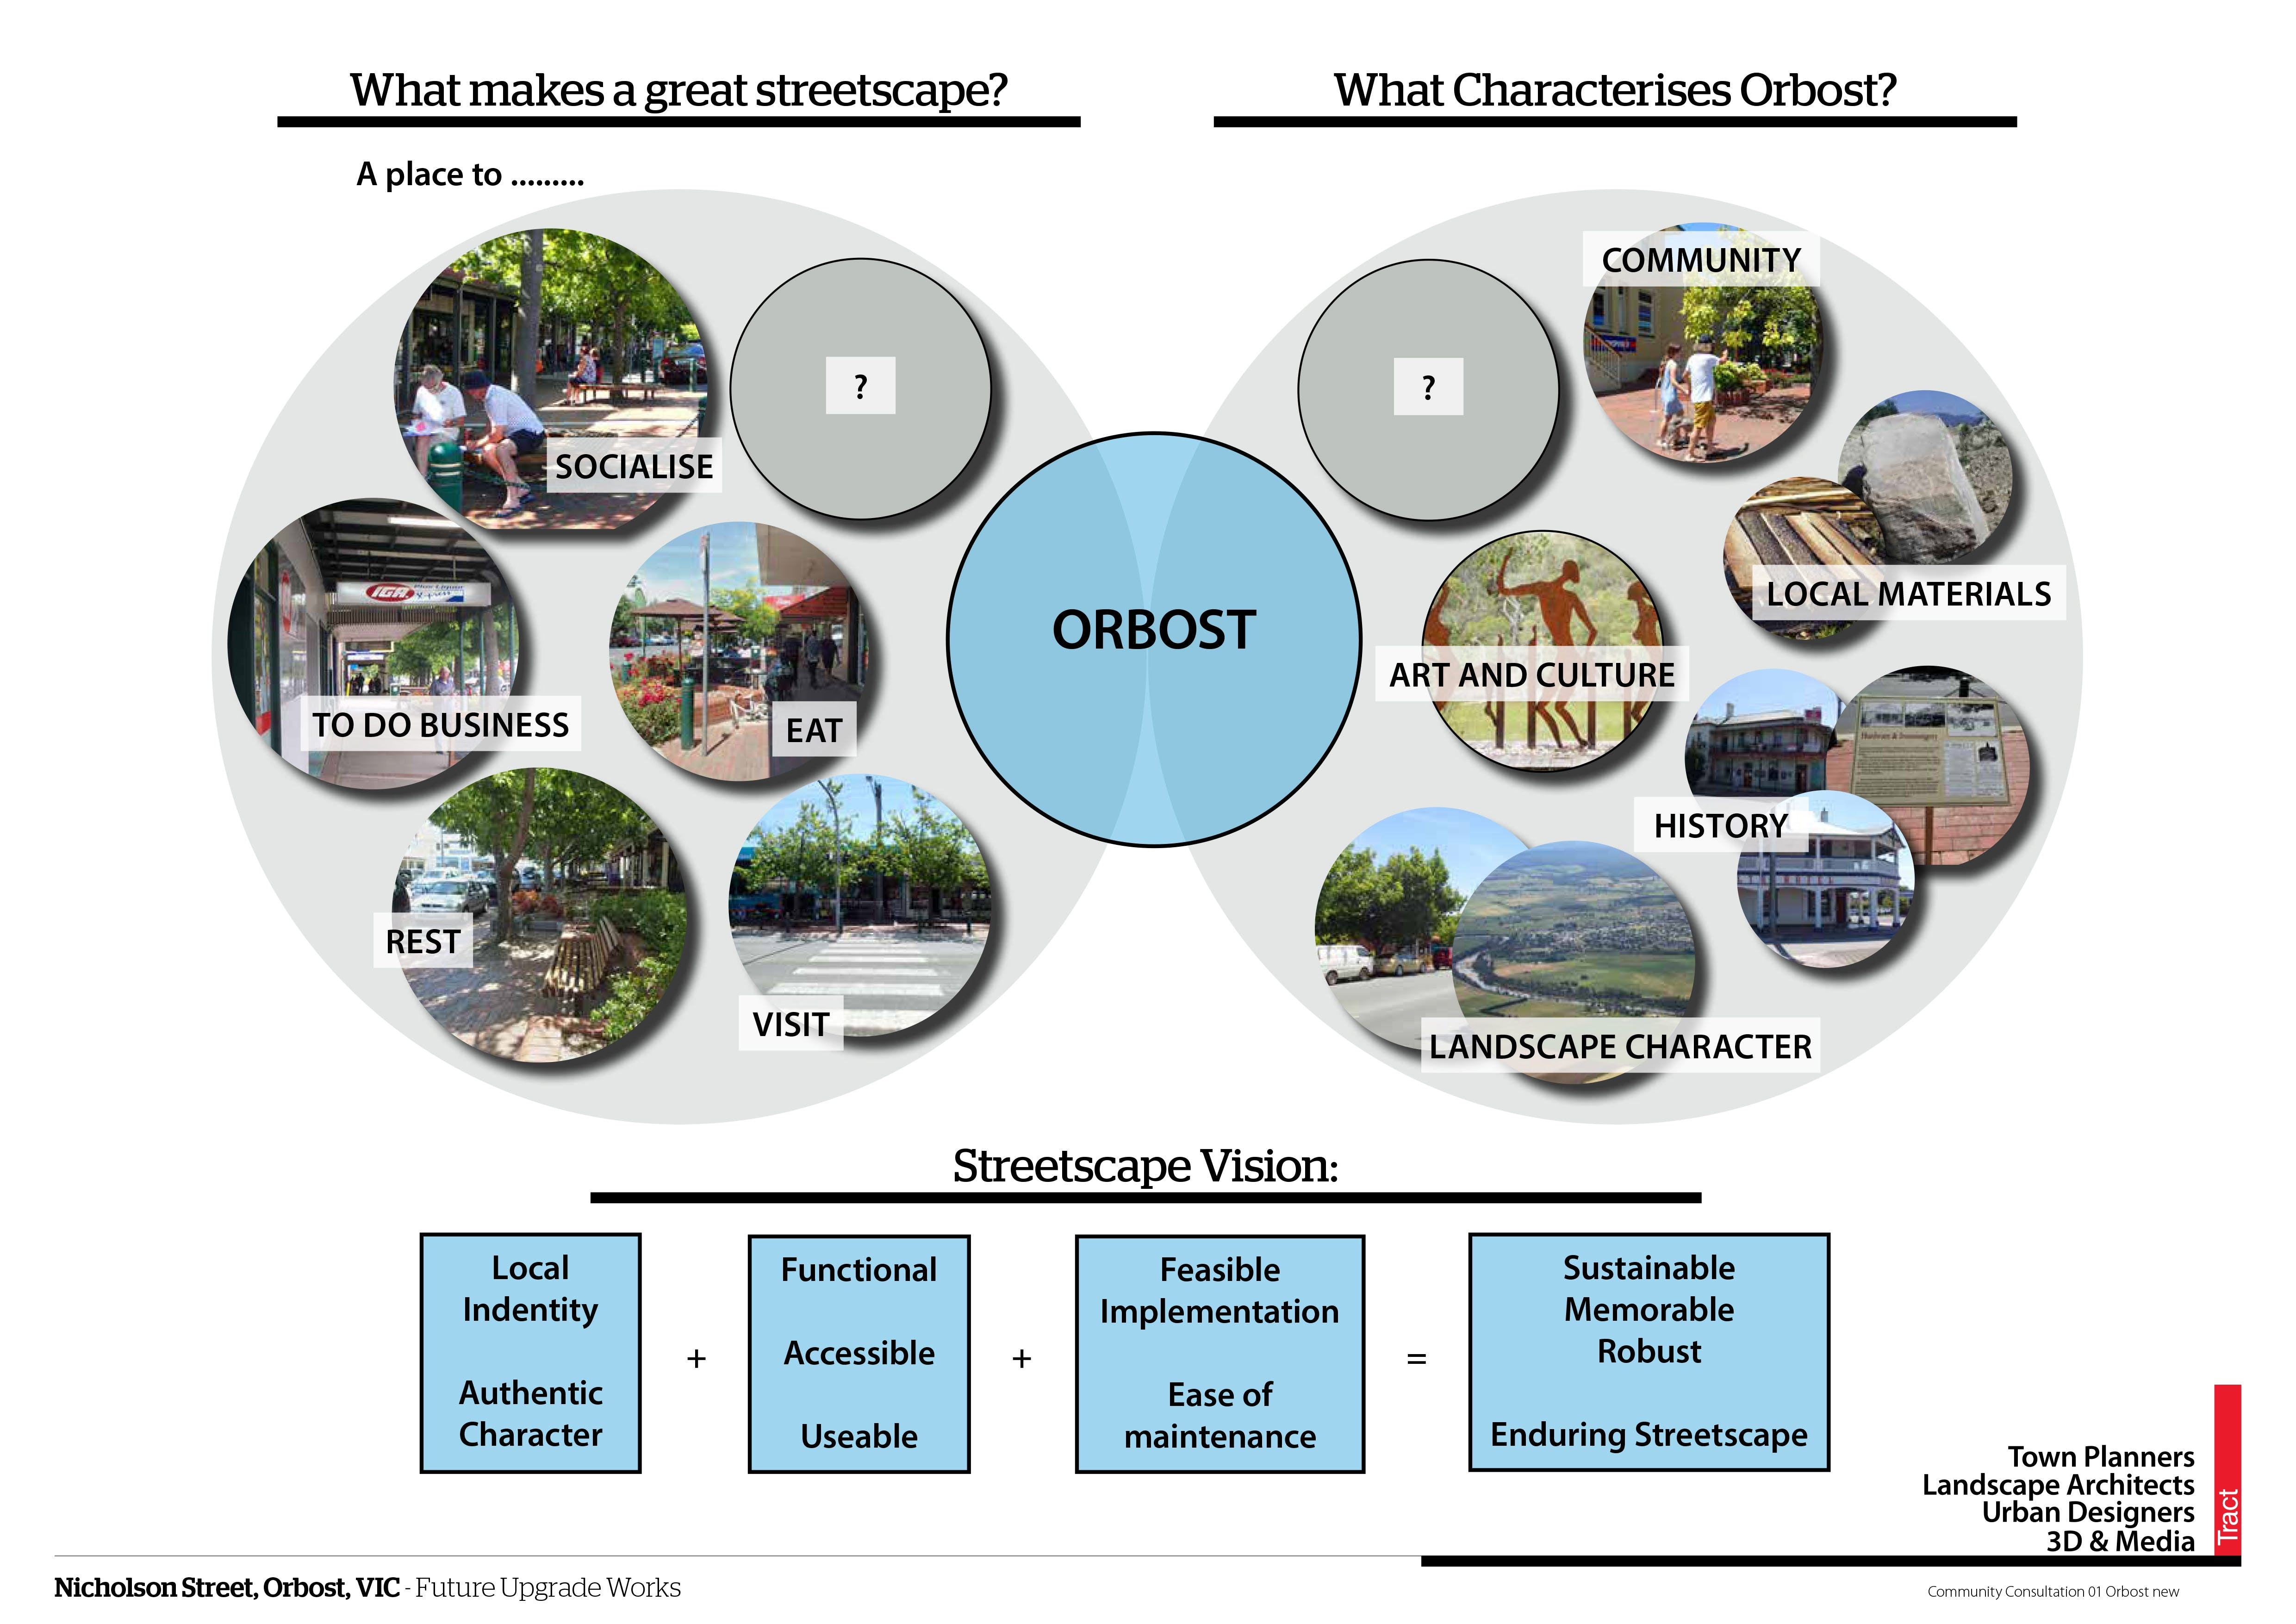 What Makes A Great Streetscape